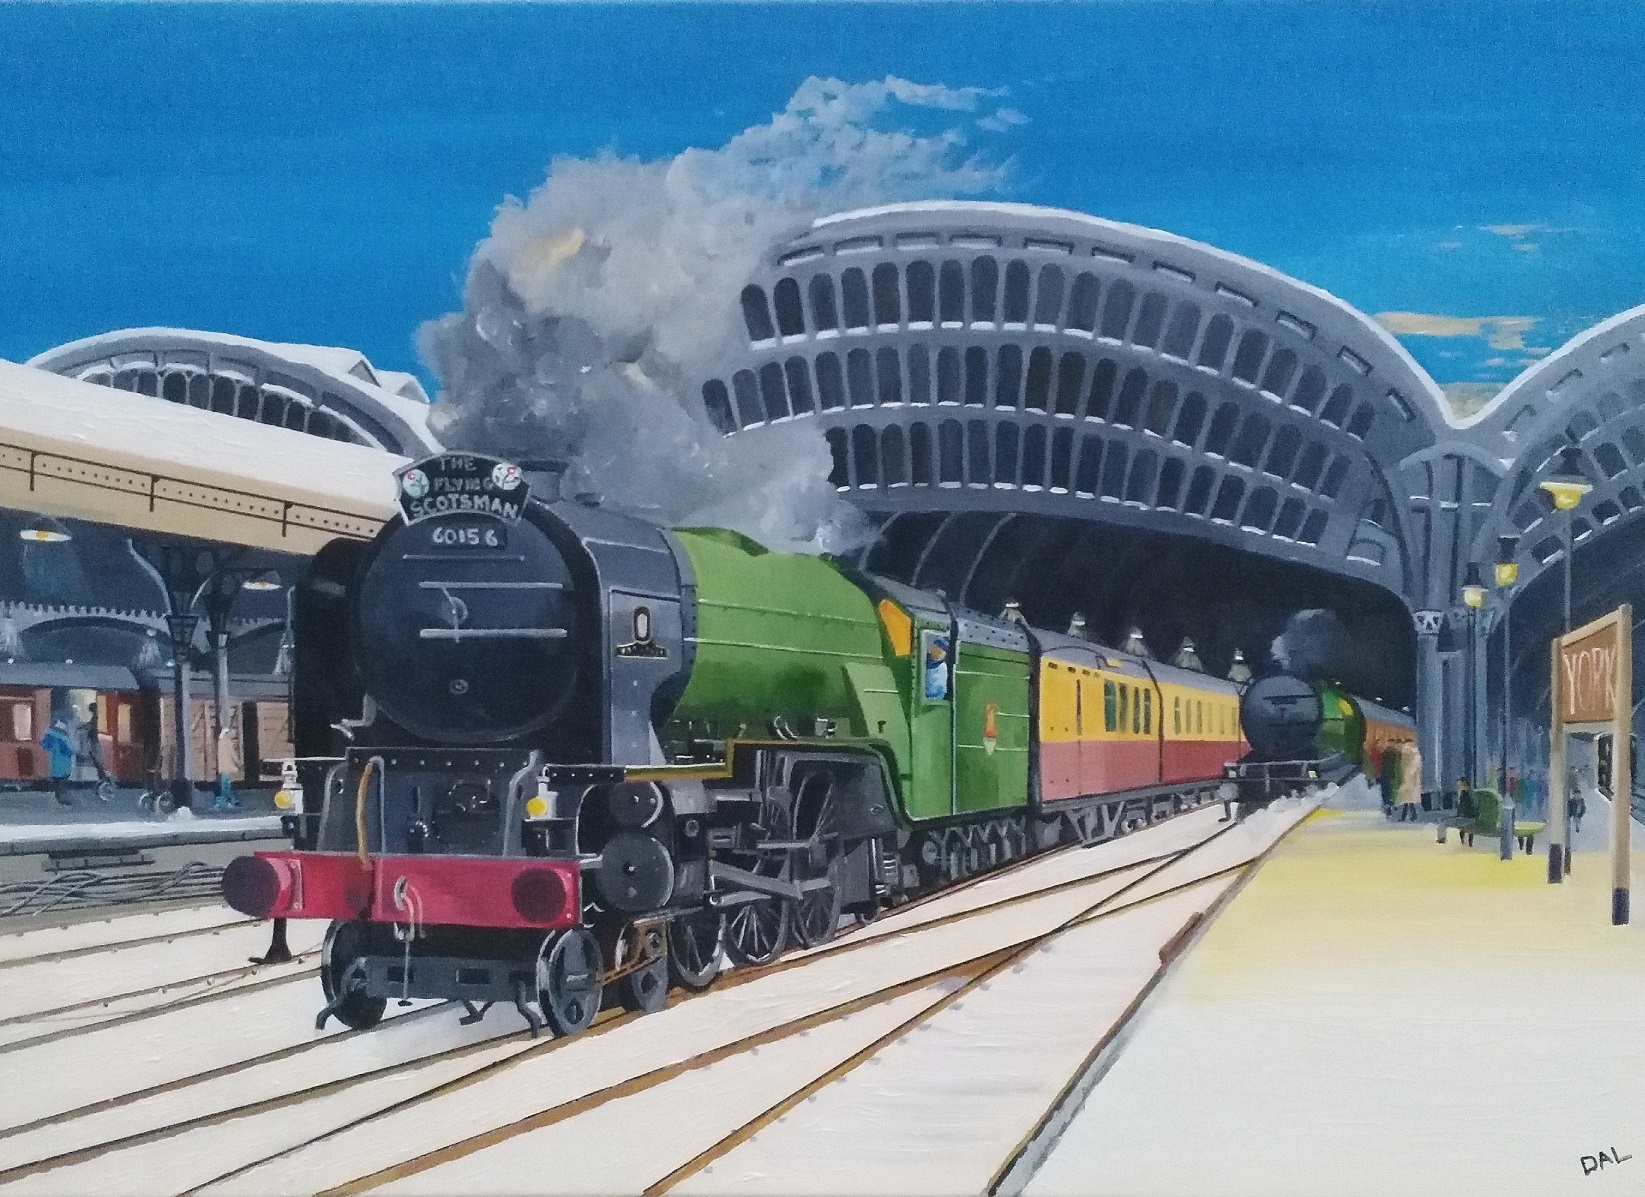 Dlowderflying scotsman 60